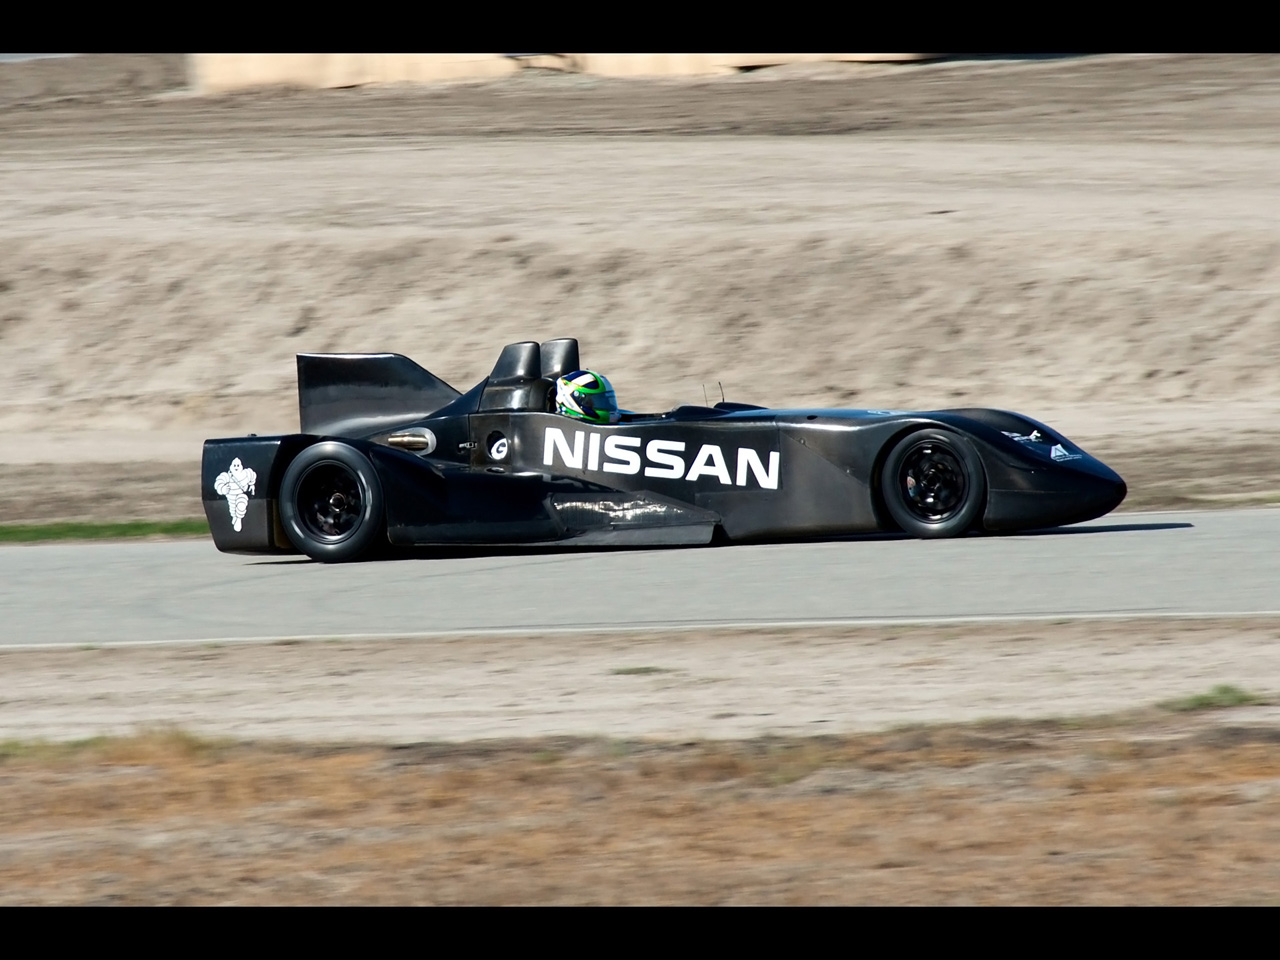 2012 Nissan DeltaWing Le Mans Race Car   Moving   1280x960   Wallpaper 1280x960